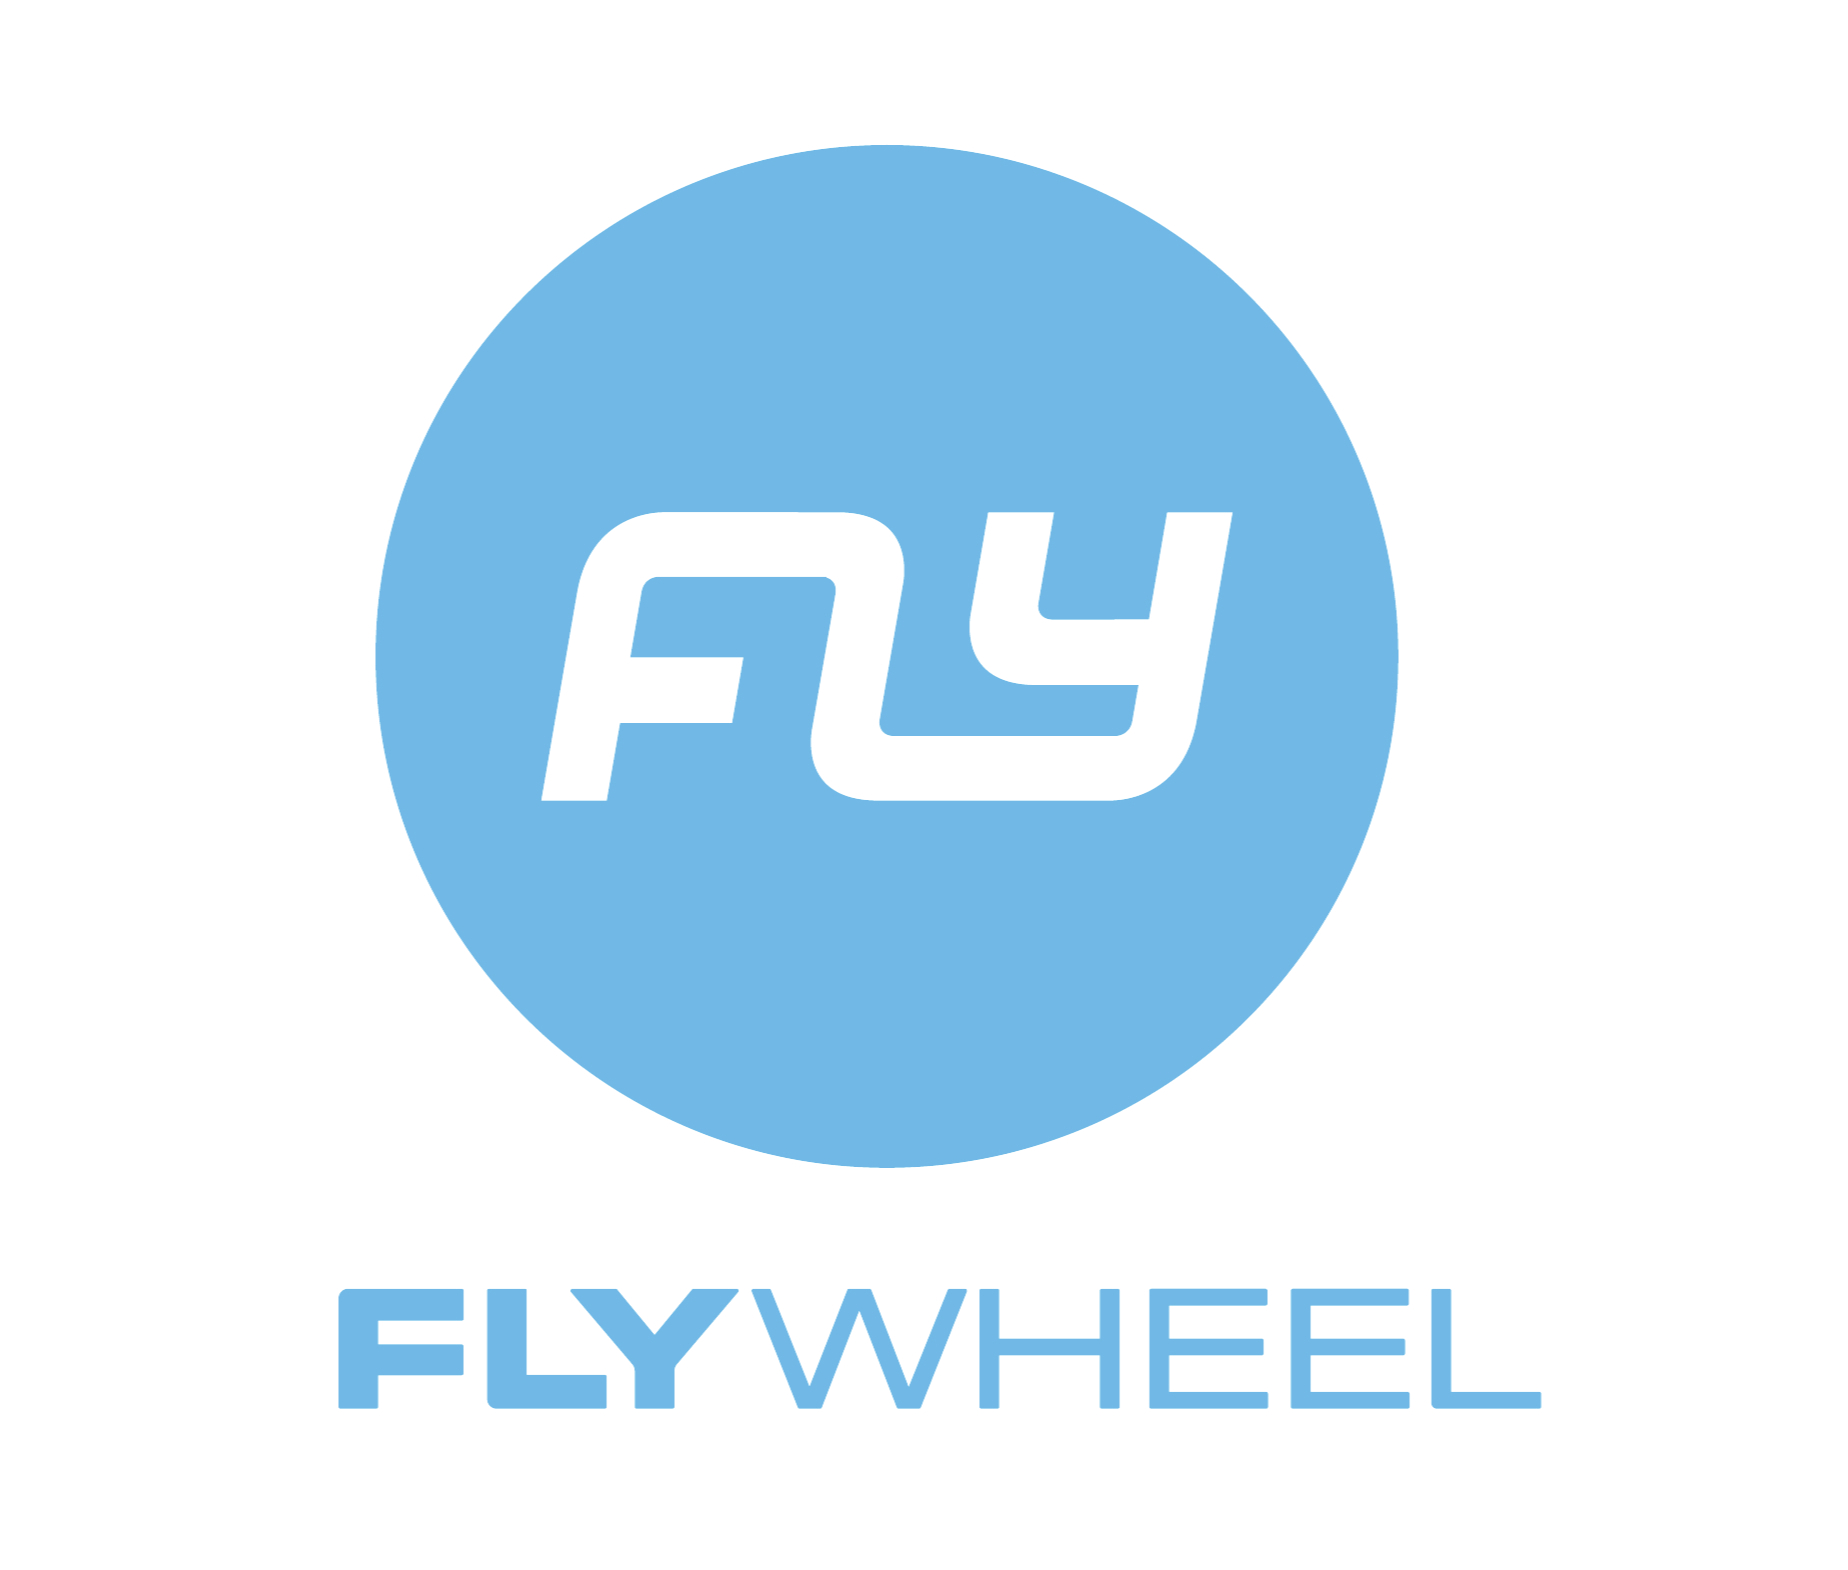 flywheel-logo.jpg